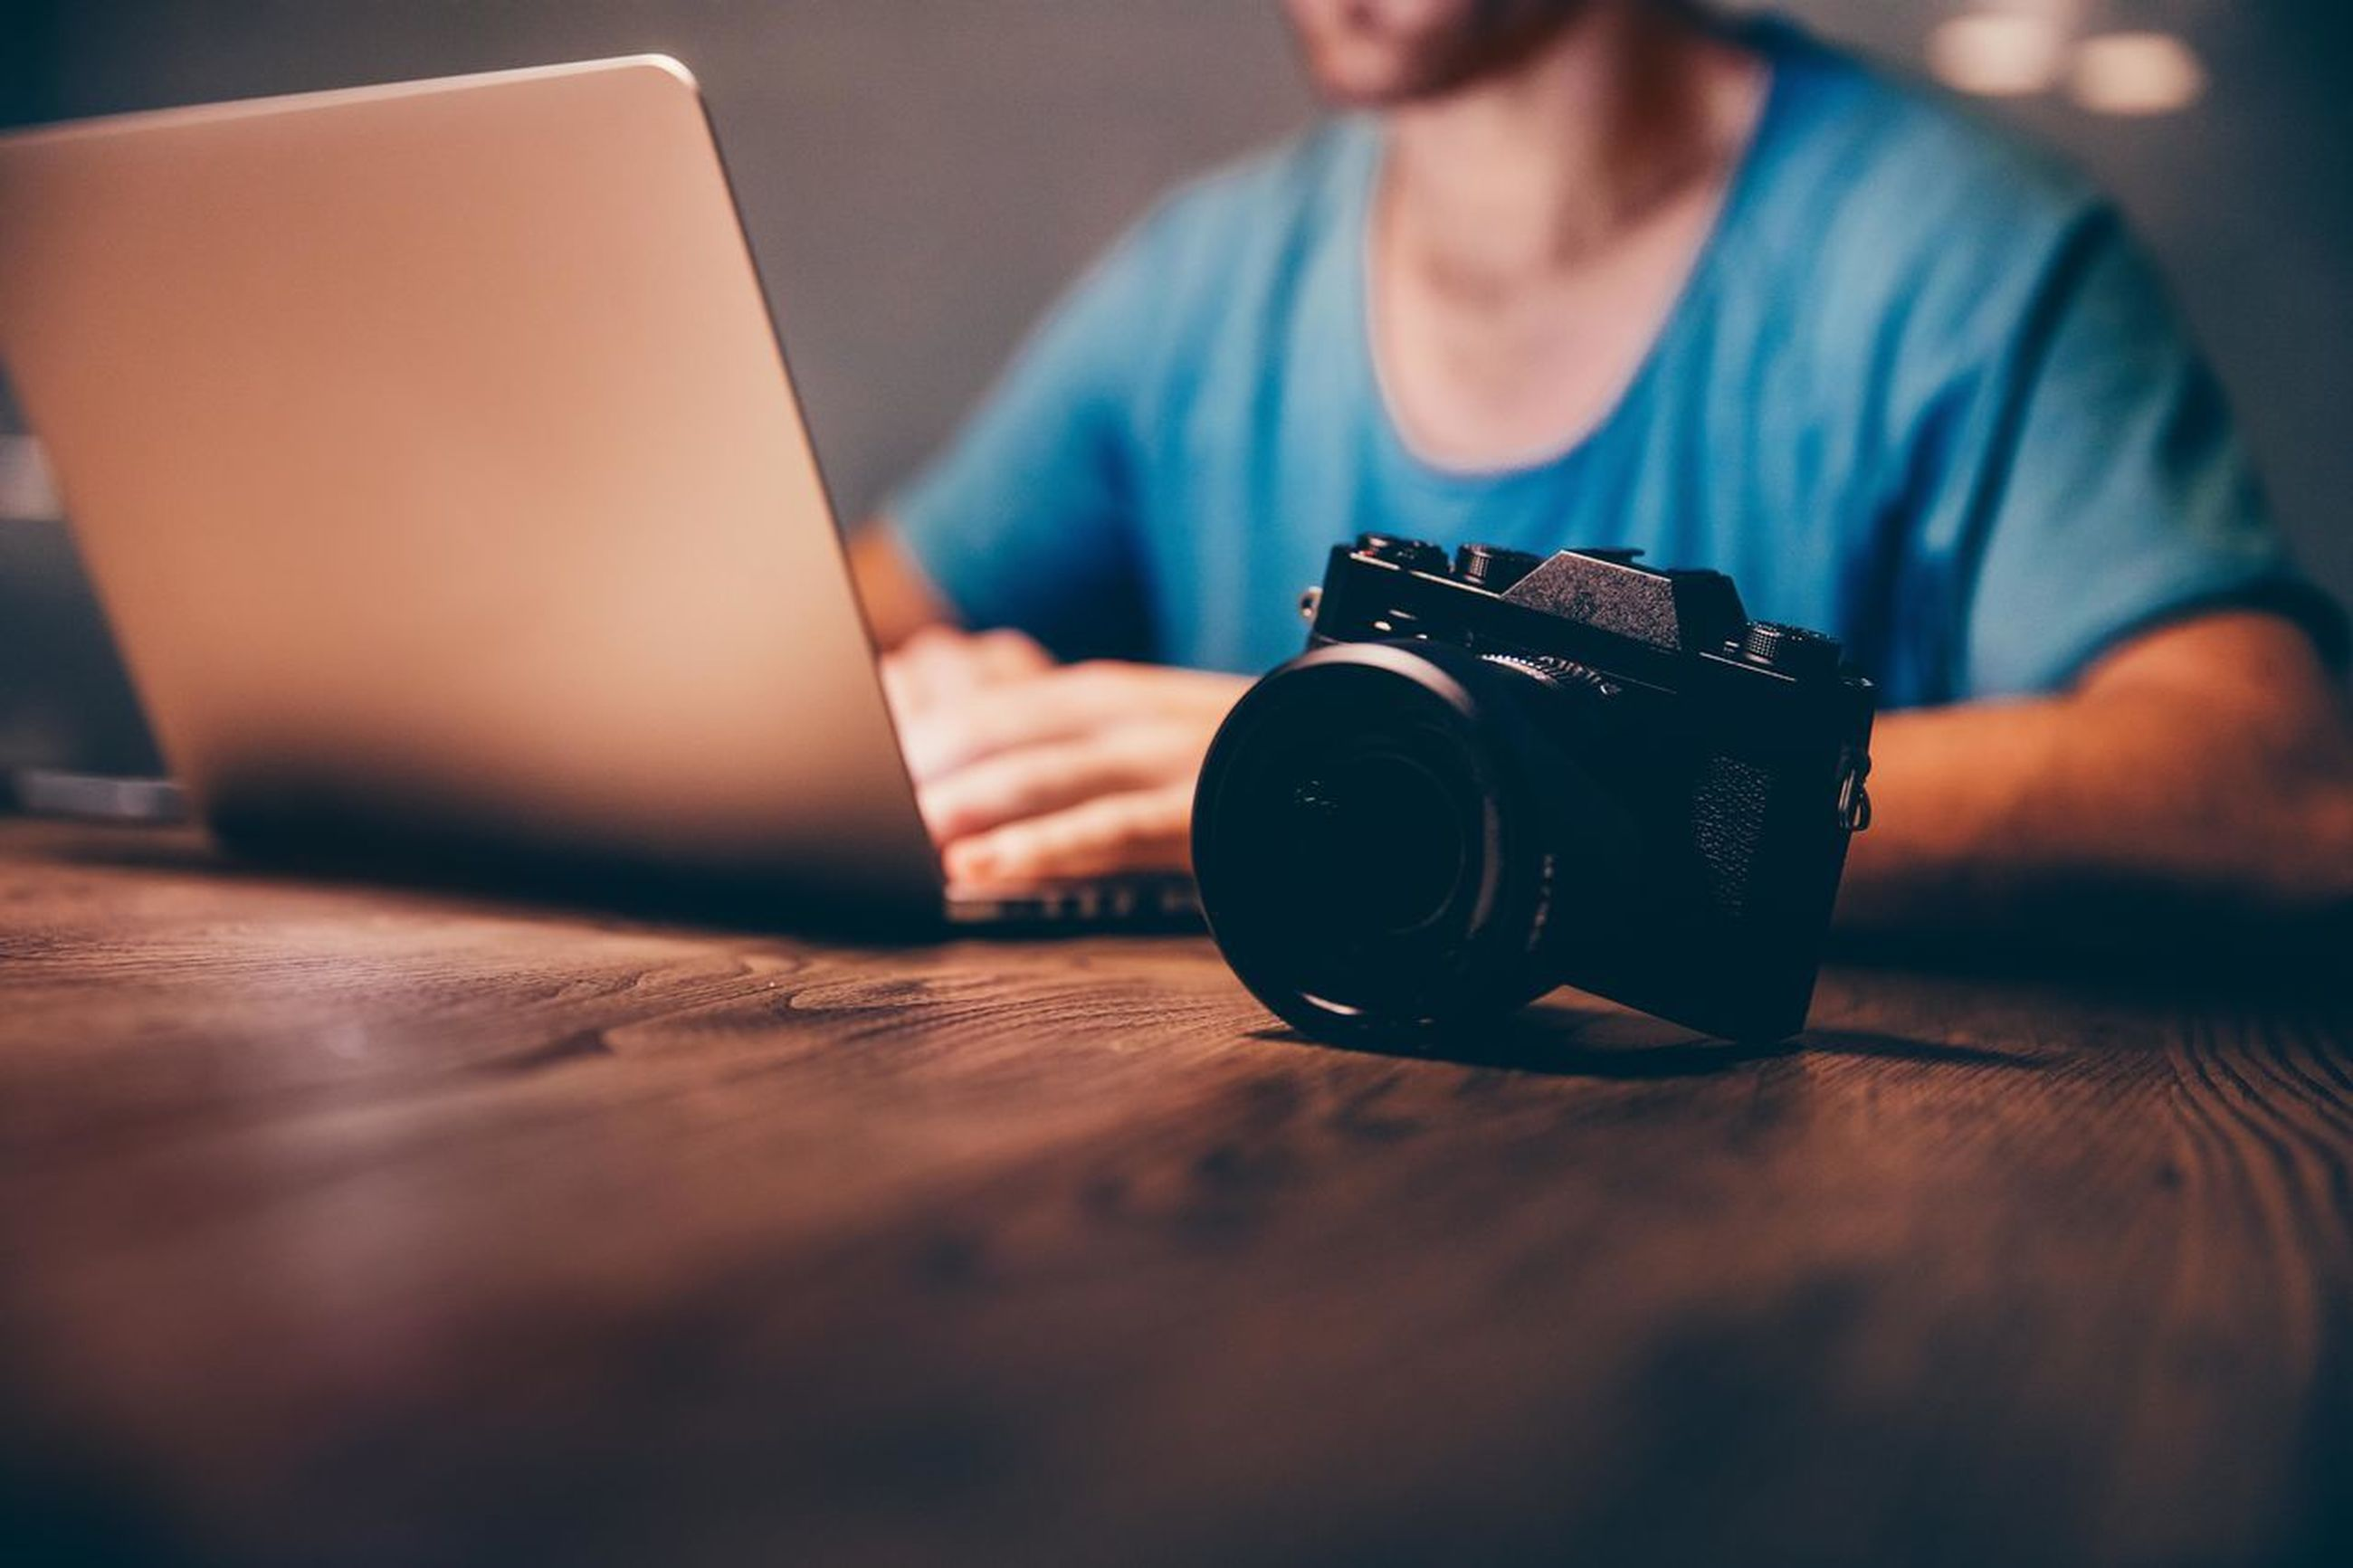 technology, photography themes, camera - photographic equipment, using laptop, wireless technology, laptop, one person, real people, table, communication, men, photographic equipment, holding, selective focus, indoors, connection, occupation, computer, activity, photographer, digital camera, modern